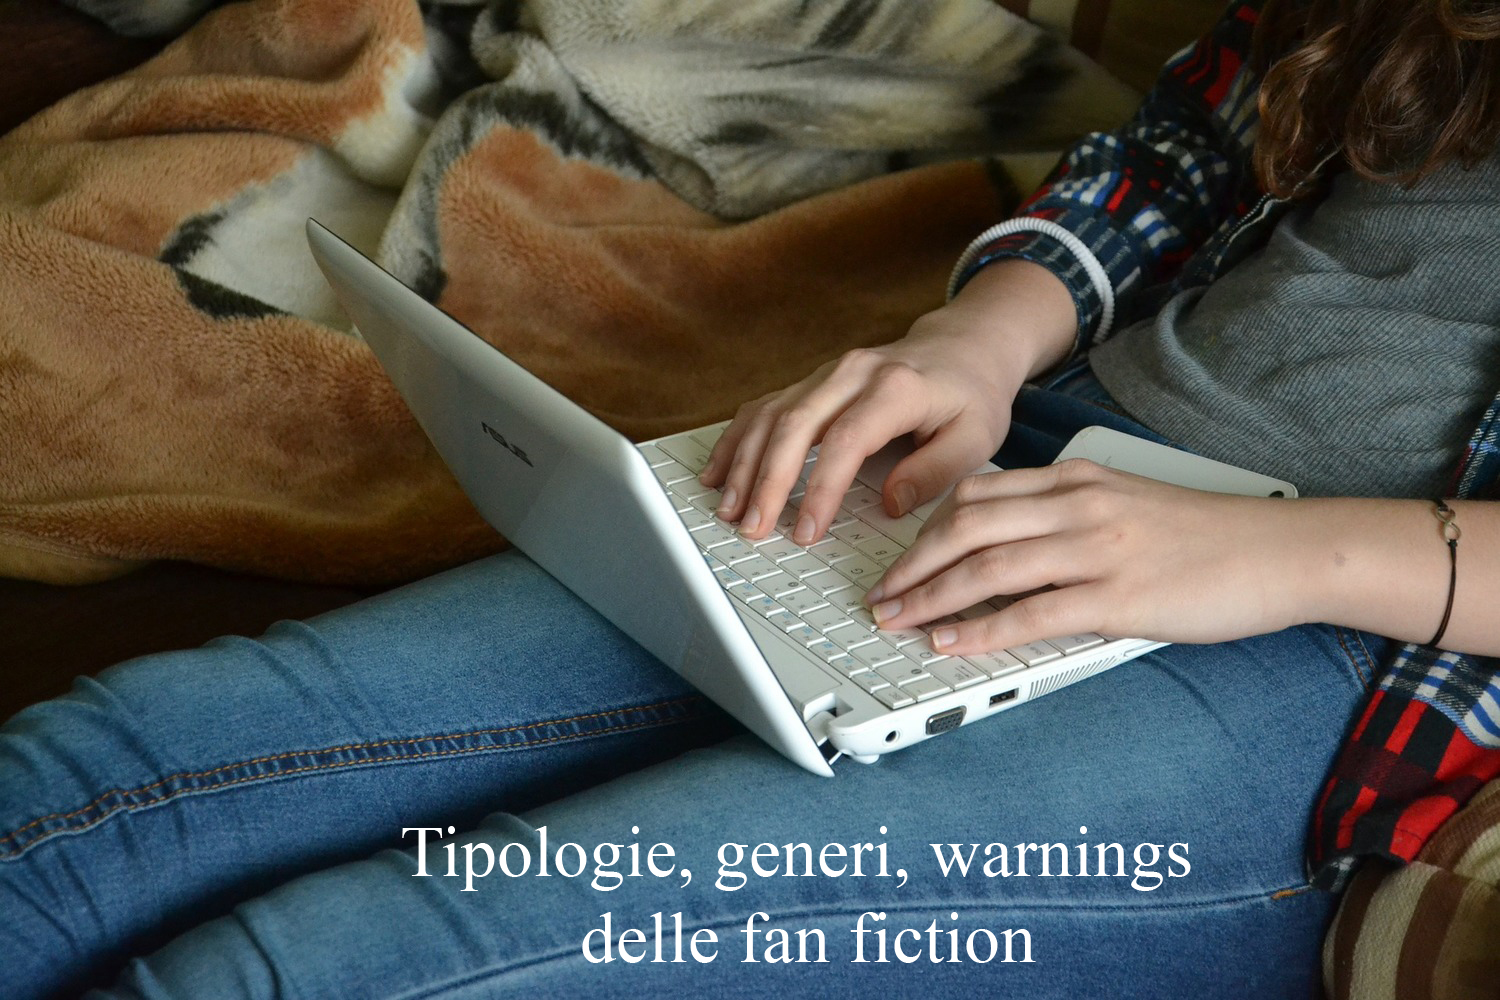 Tipologie, generi, warnings delle fan fiction